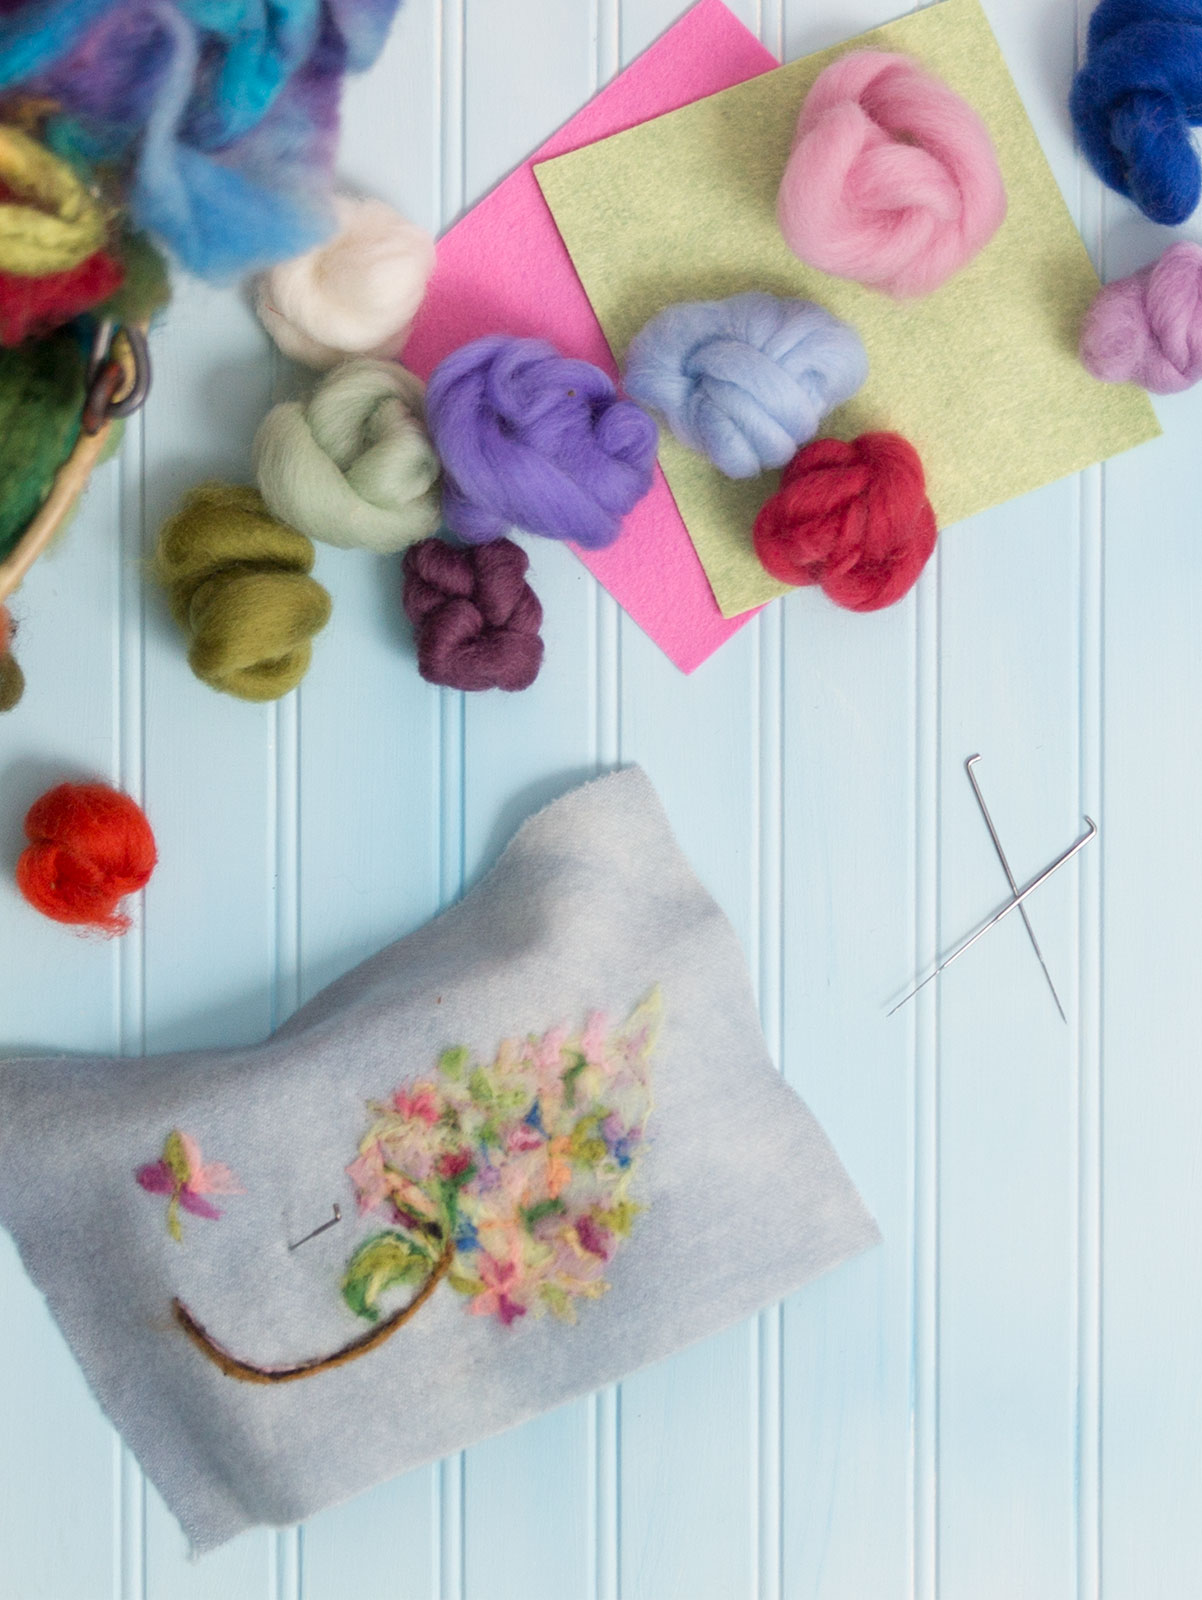 Wool Felting Kits